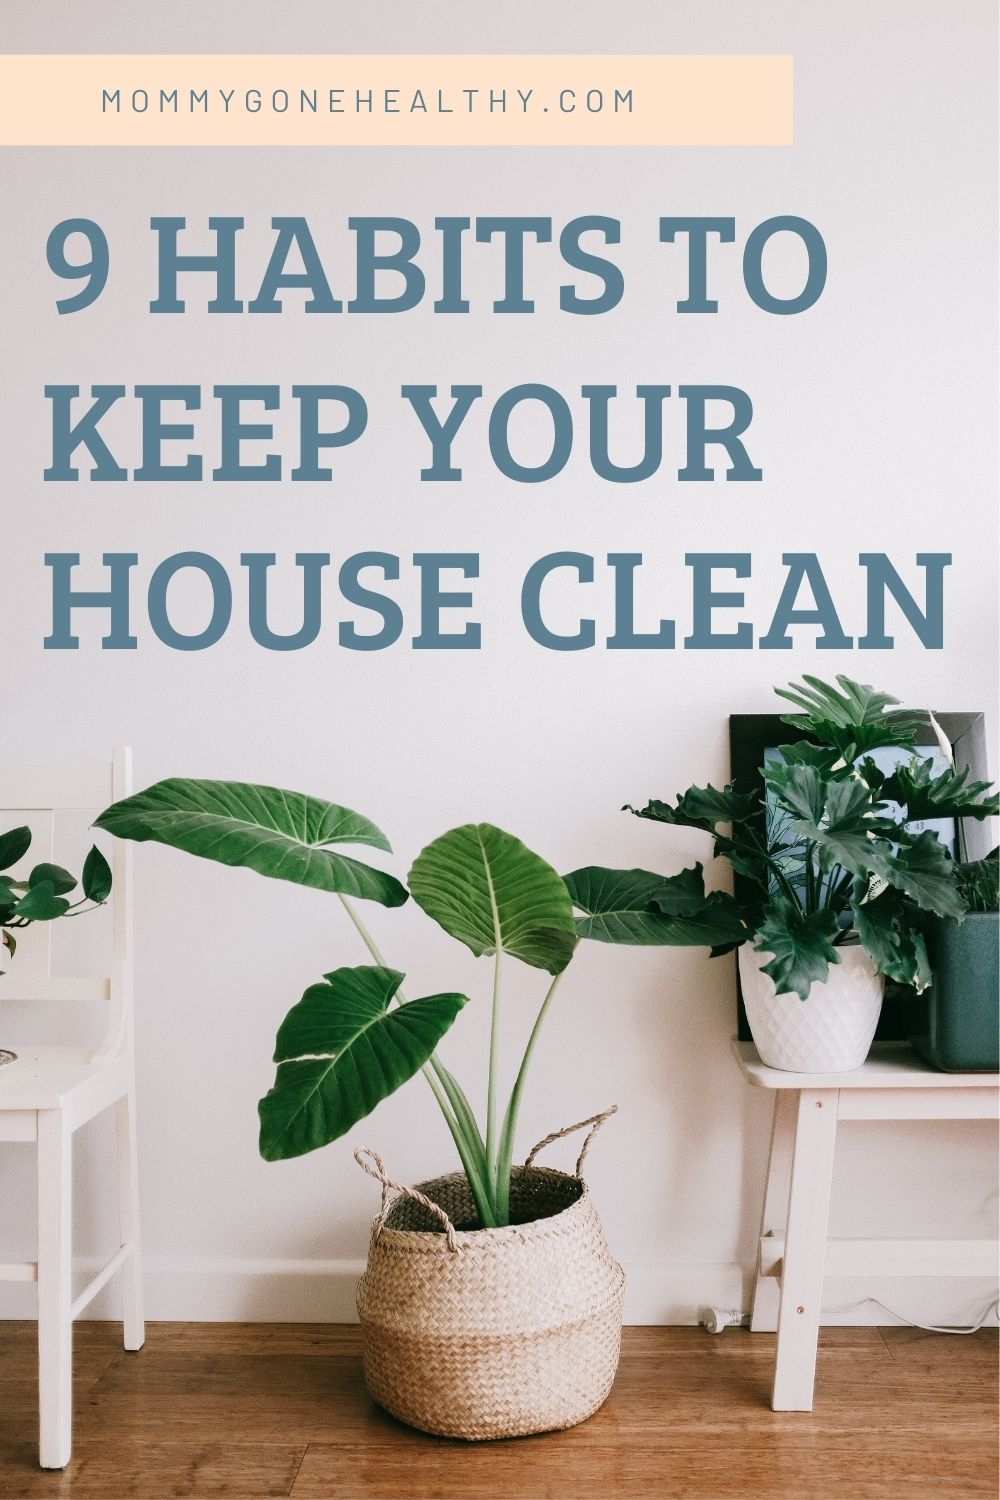 daily habits to keep your house clean